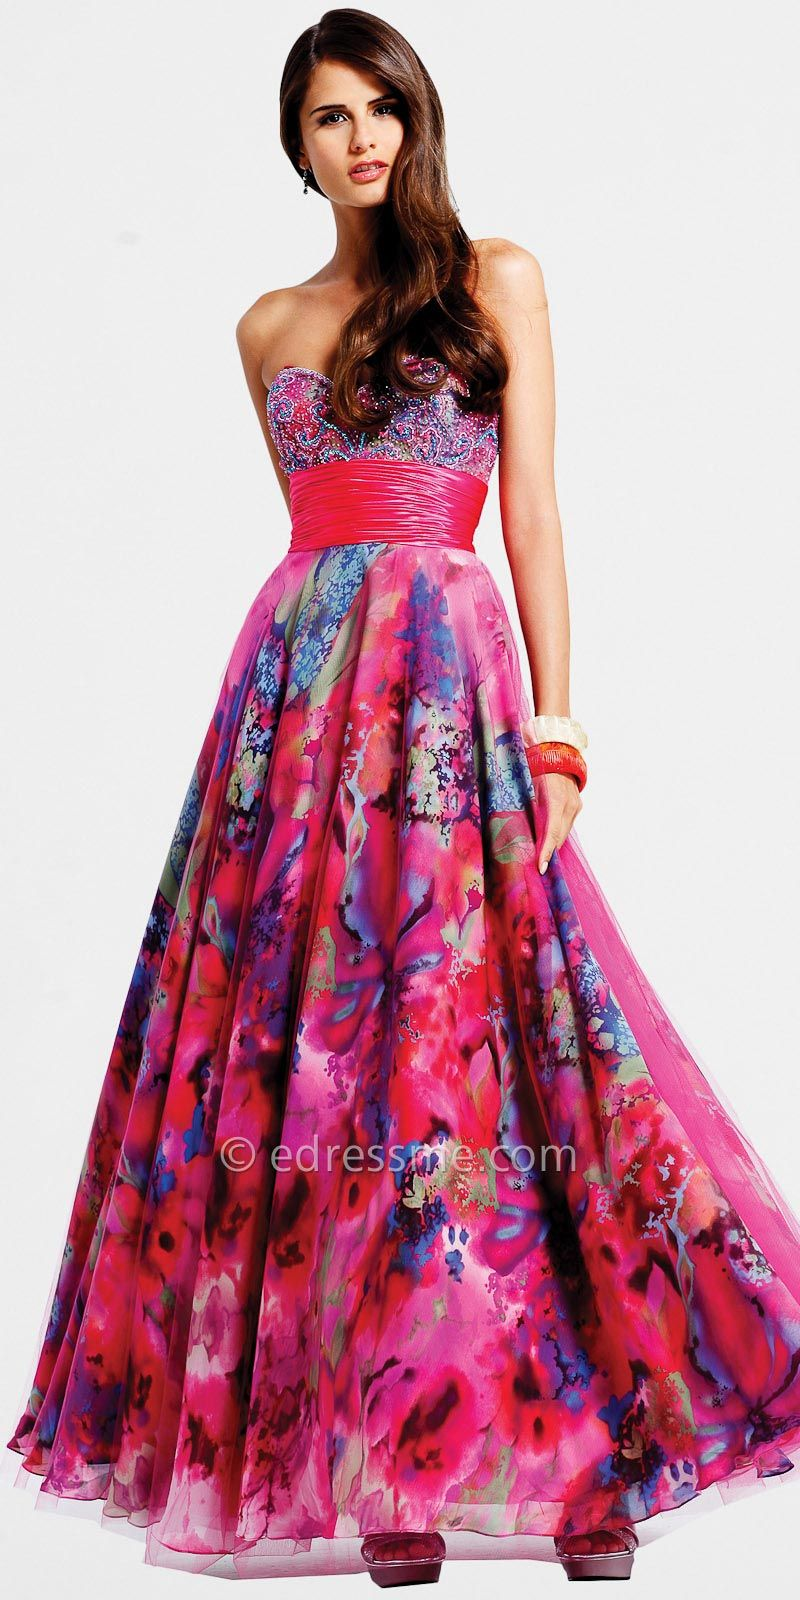 Strapless Ball Gowns by Faviana at eDressMe | My Style | Pinterest